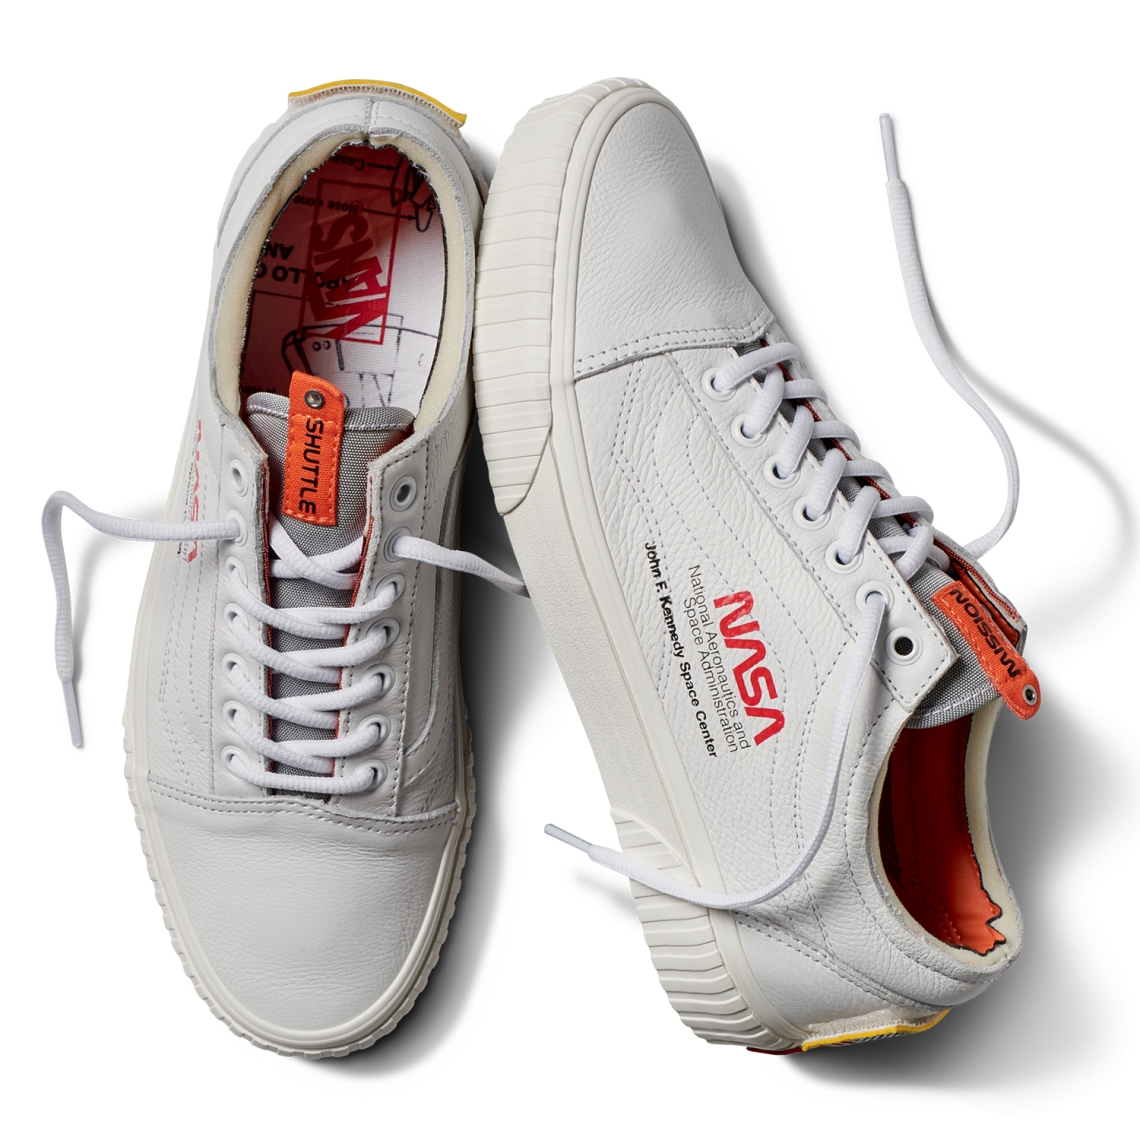 HO18_Vans_SpaceVoyager_DigitalPack_StandardProductPhoto_1500x1500_12.jpg